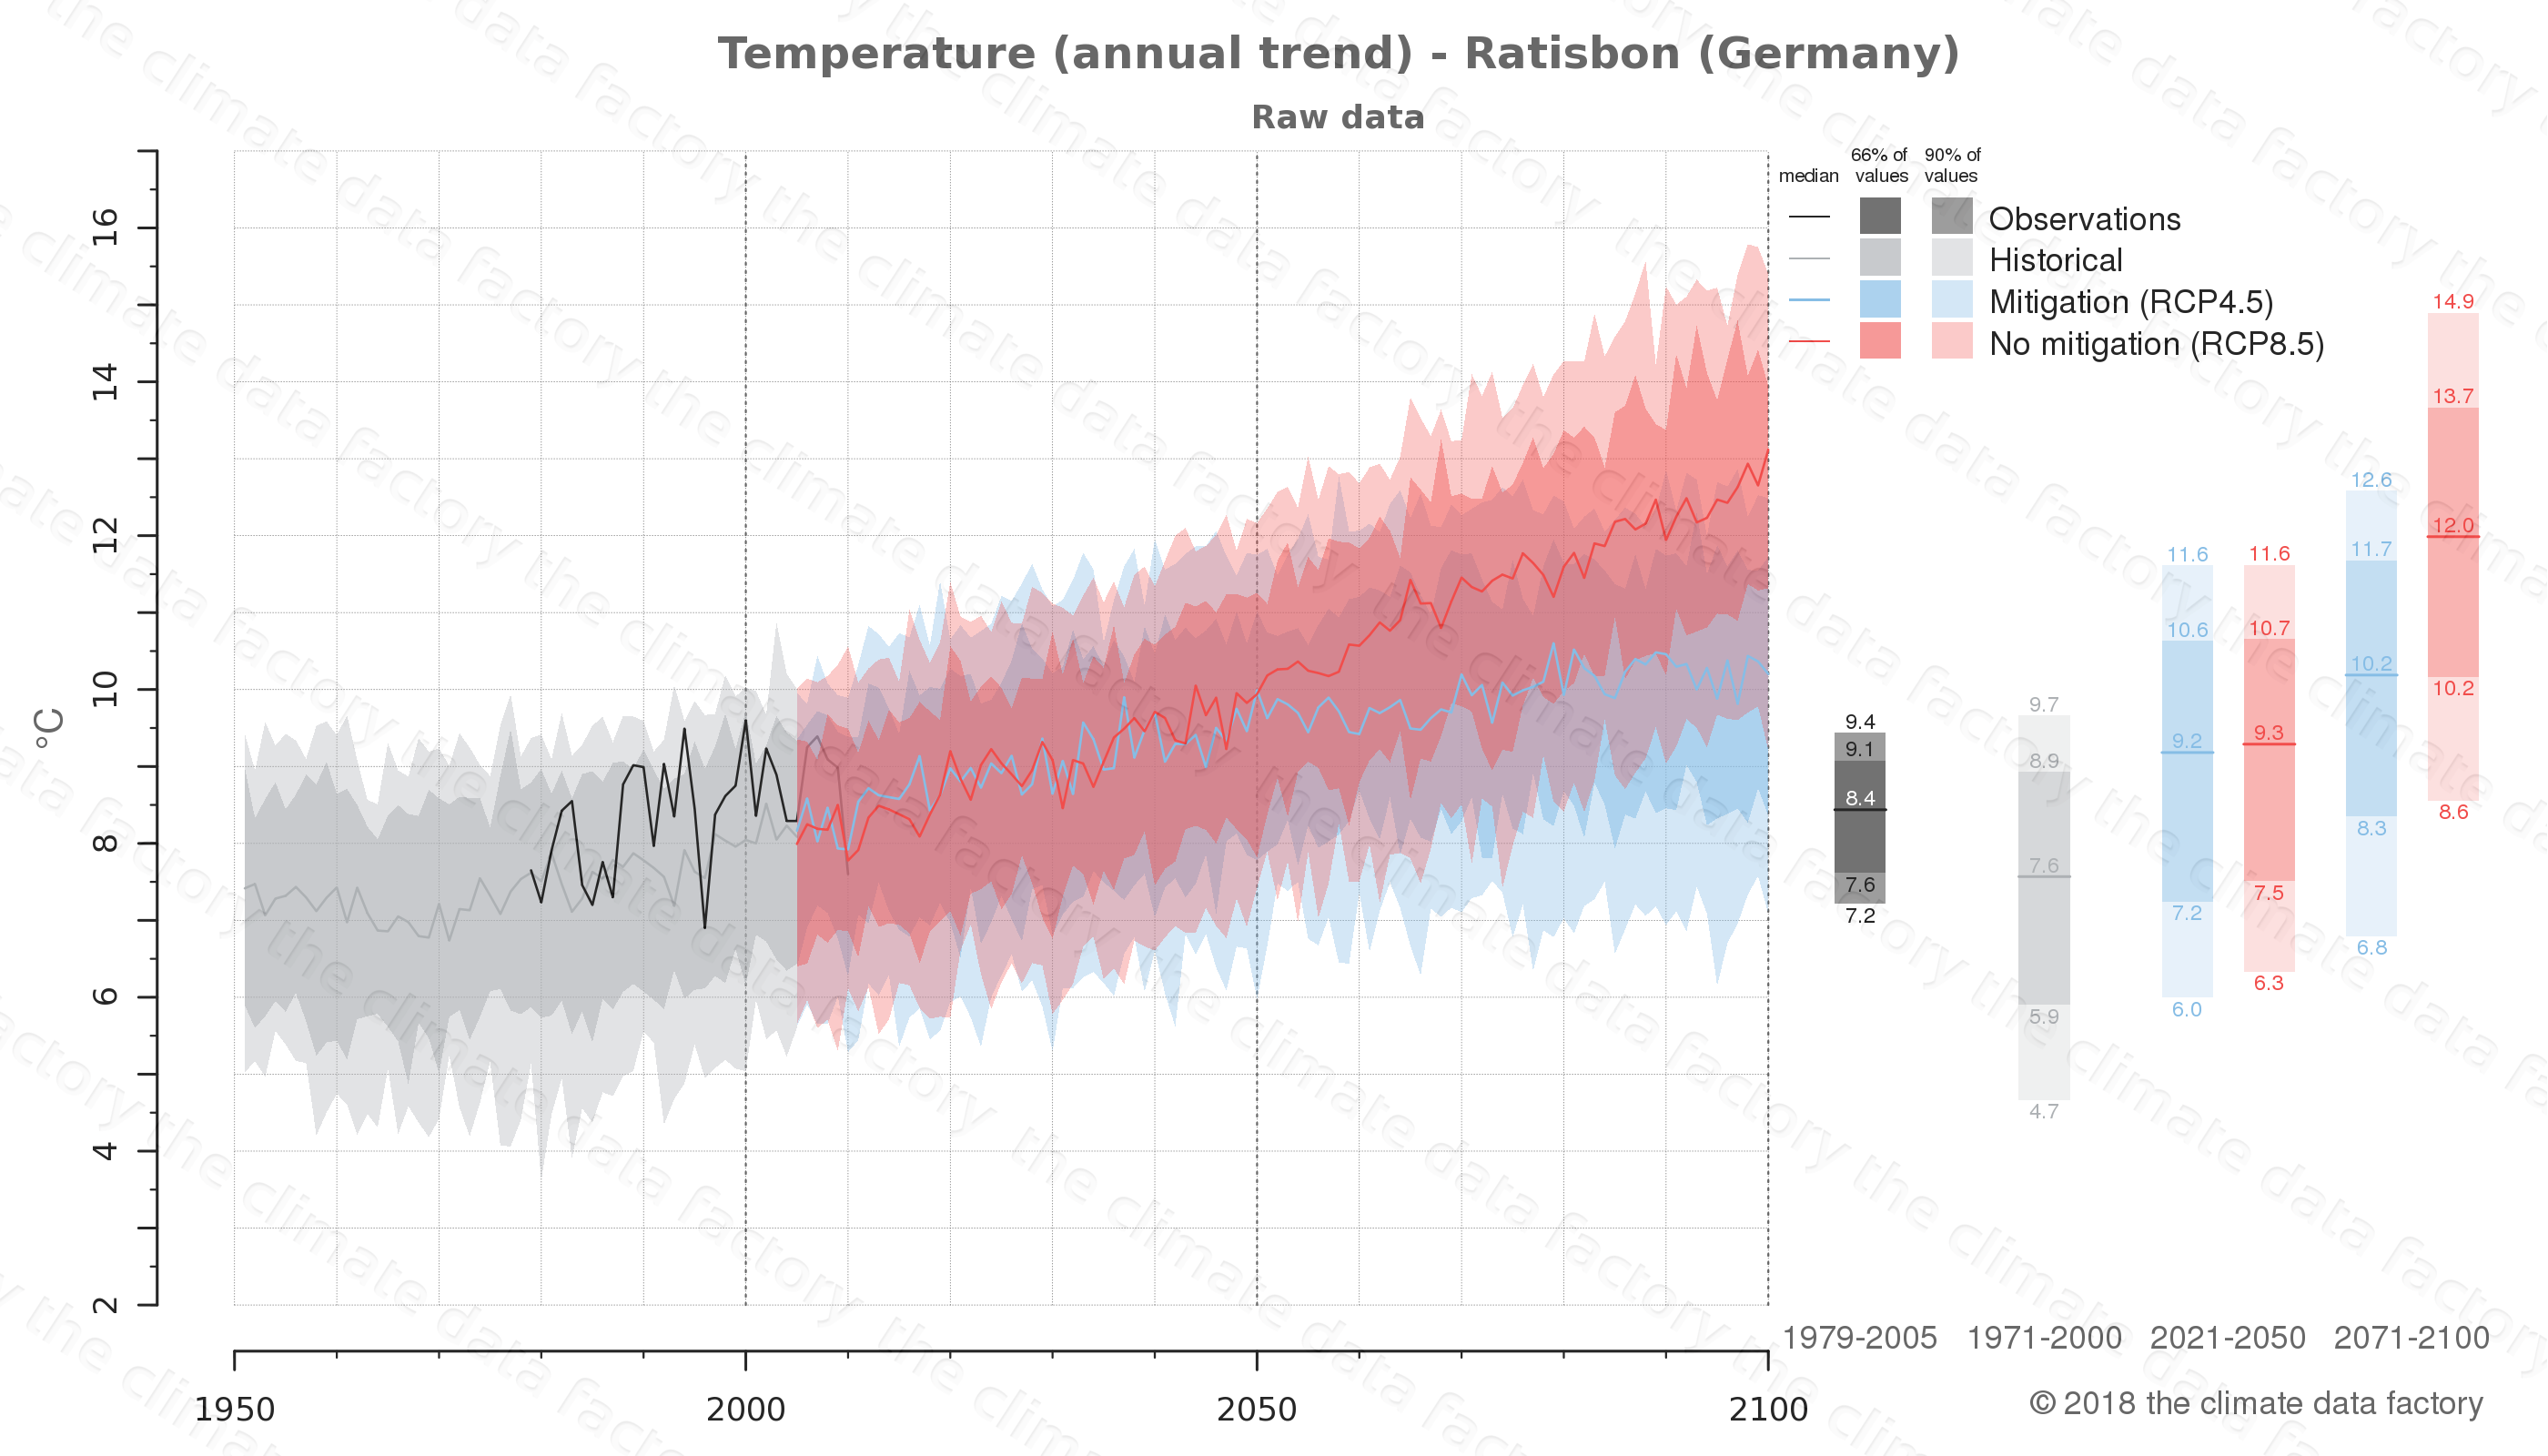 climate change data policy adaptation climate graph city data temperature ratisbon germany